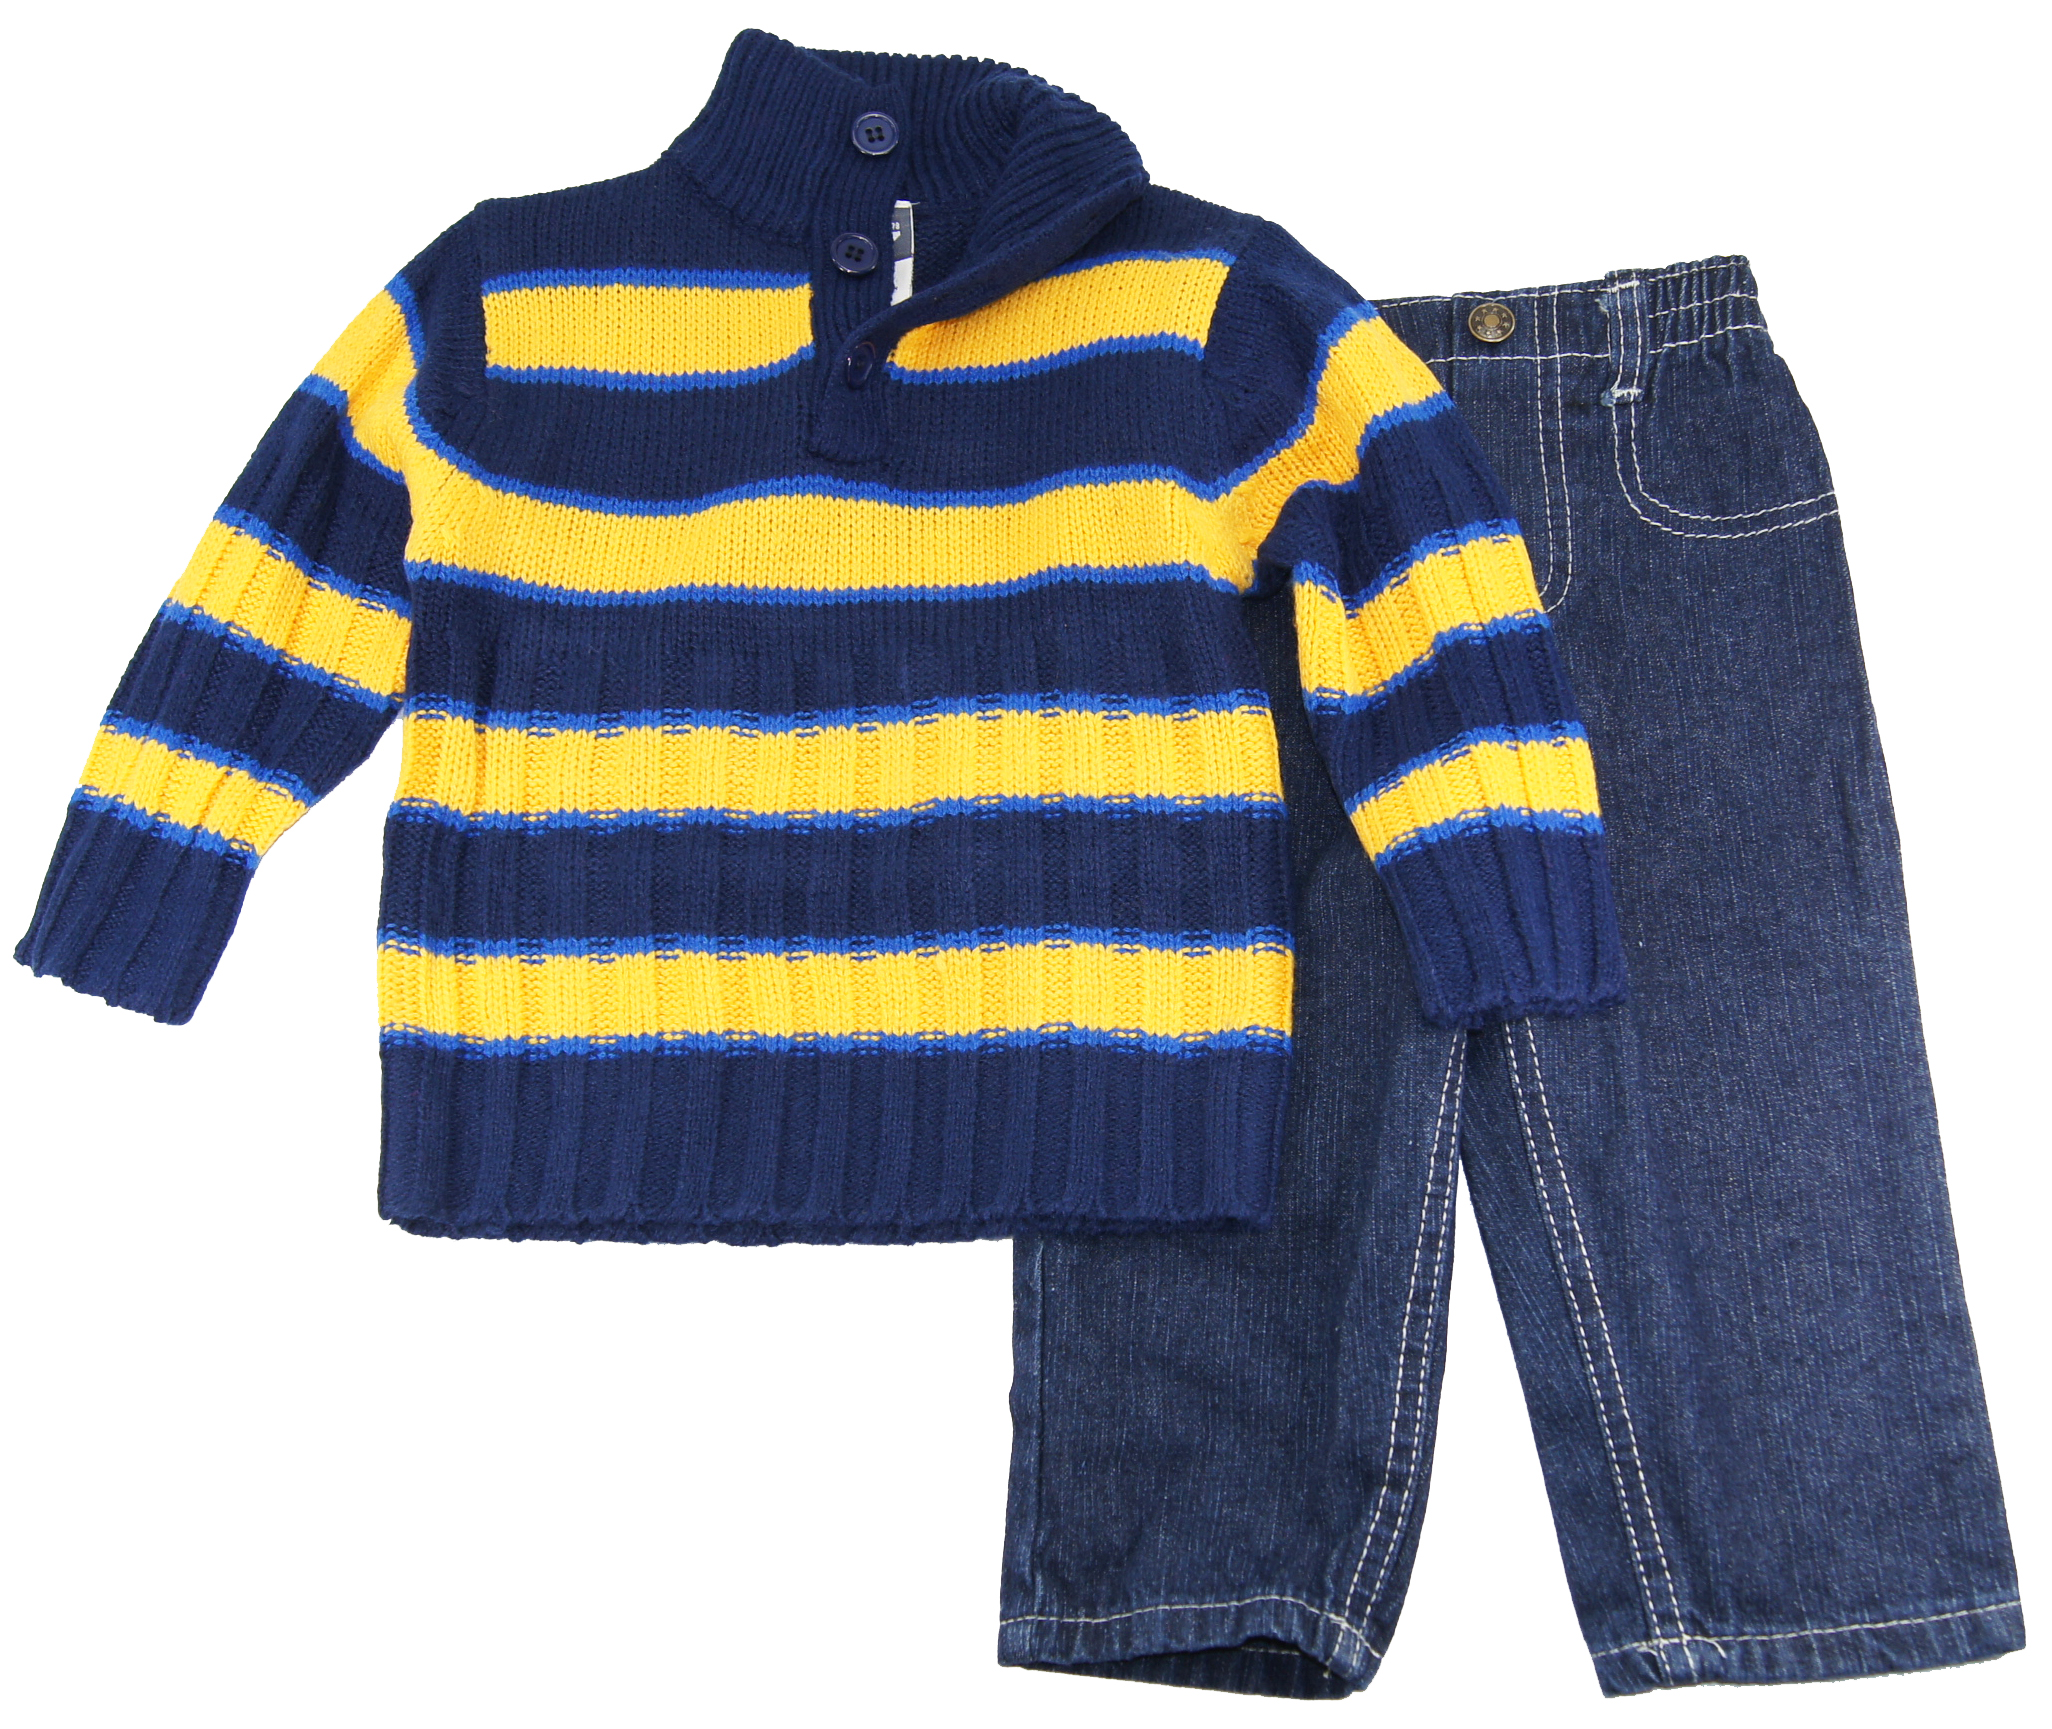 Quad Seven Infant Boys 12-24 Yellow Striped Button Up Cardigan Sewater Denim Set at Sears.com